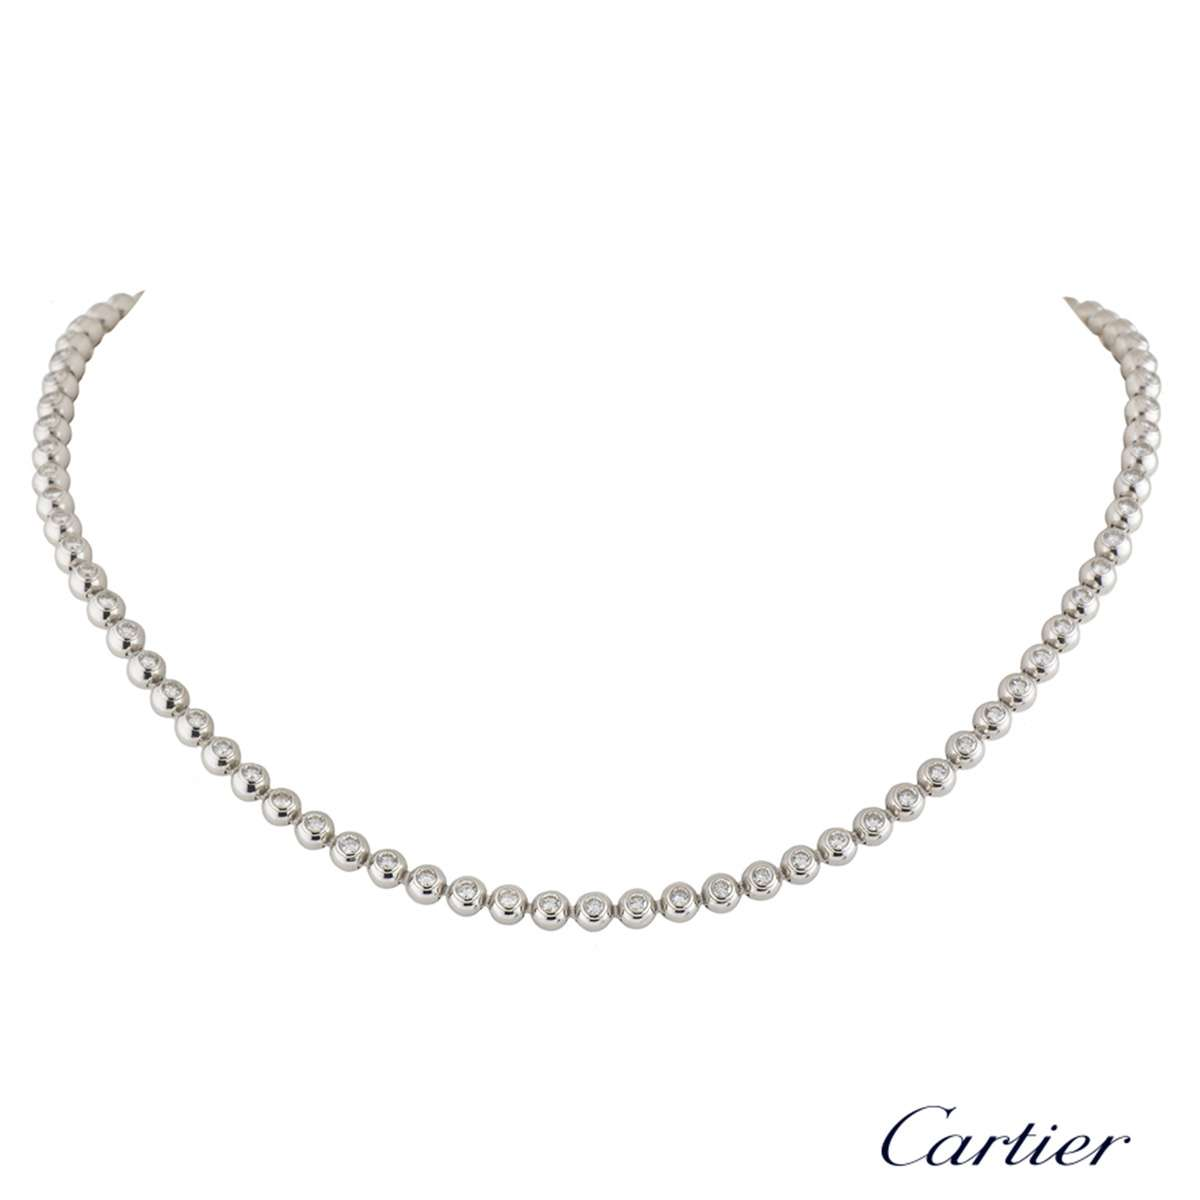 Cartier White Gold Diamond Moonlight Necklace 3.36ct G+/VVS